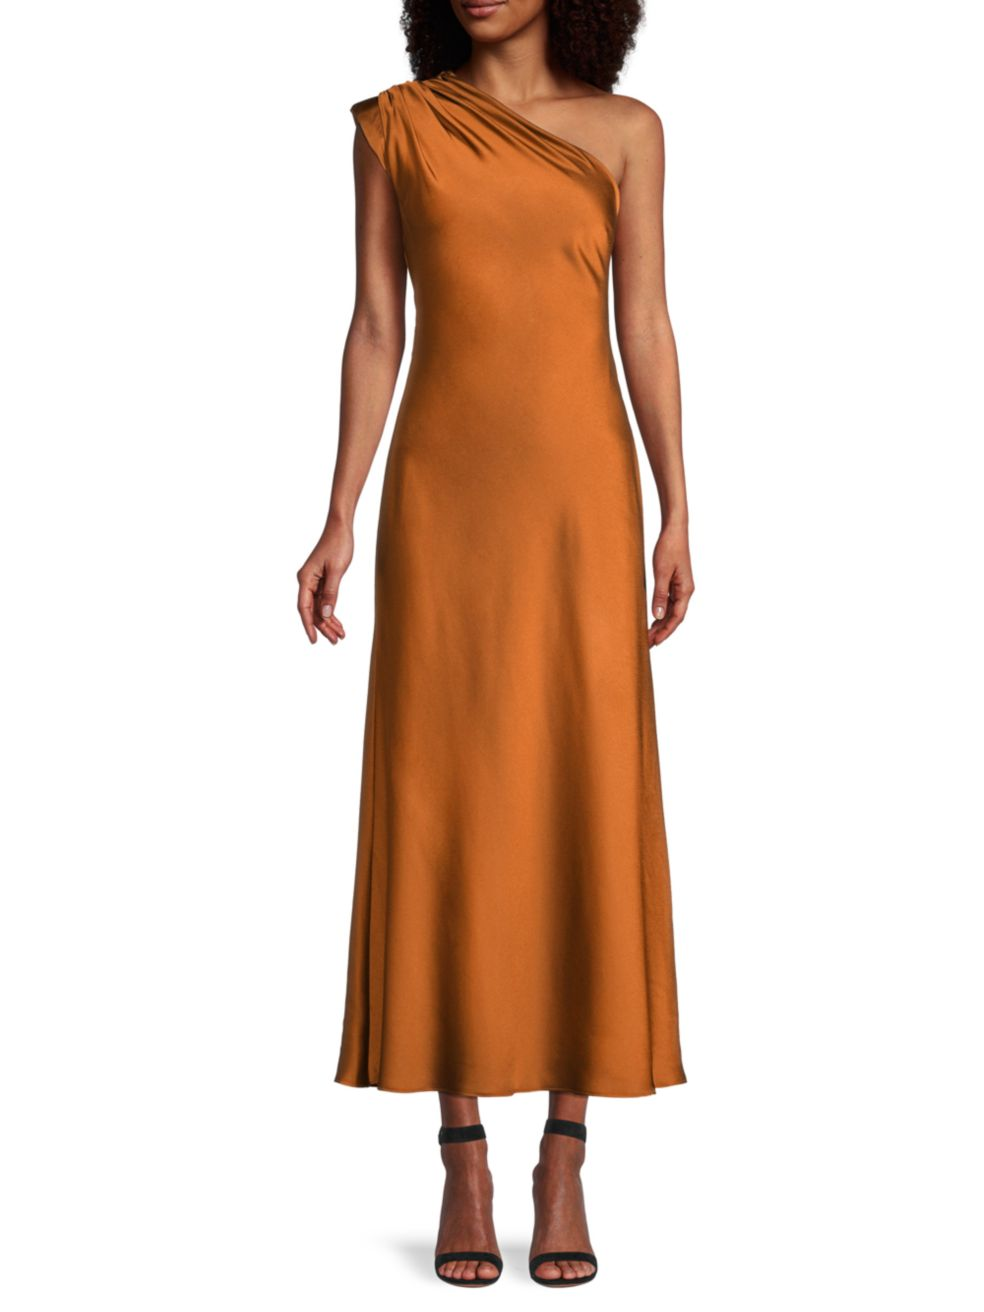 FAME AND PARTNERS The Antonia One-Shoulder Dress | SaksFifthAvenue